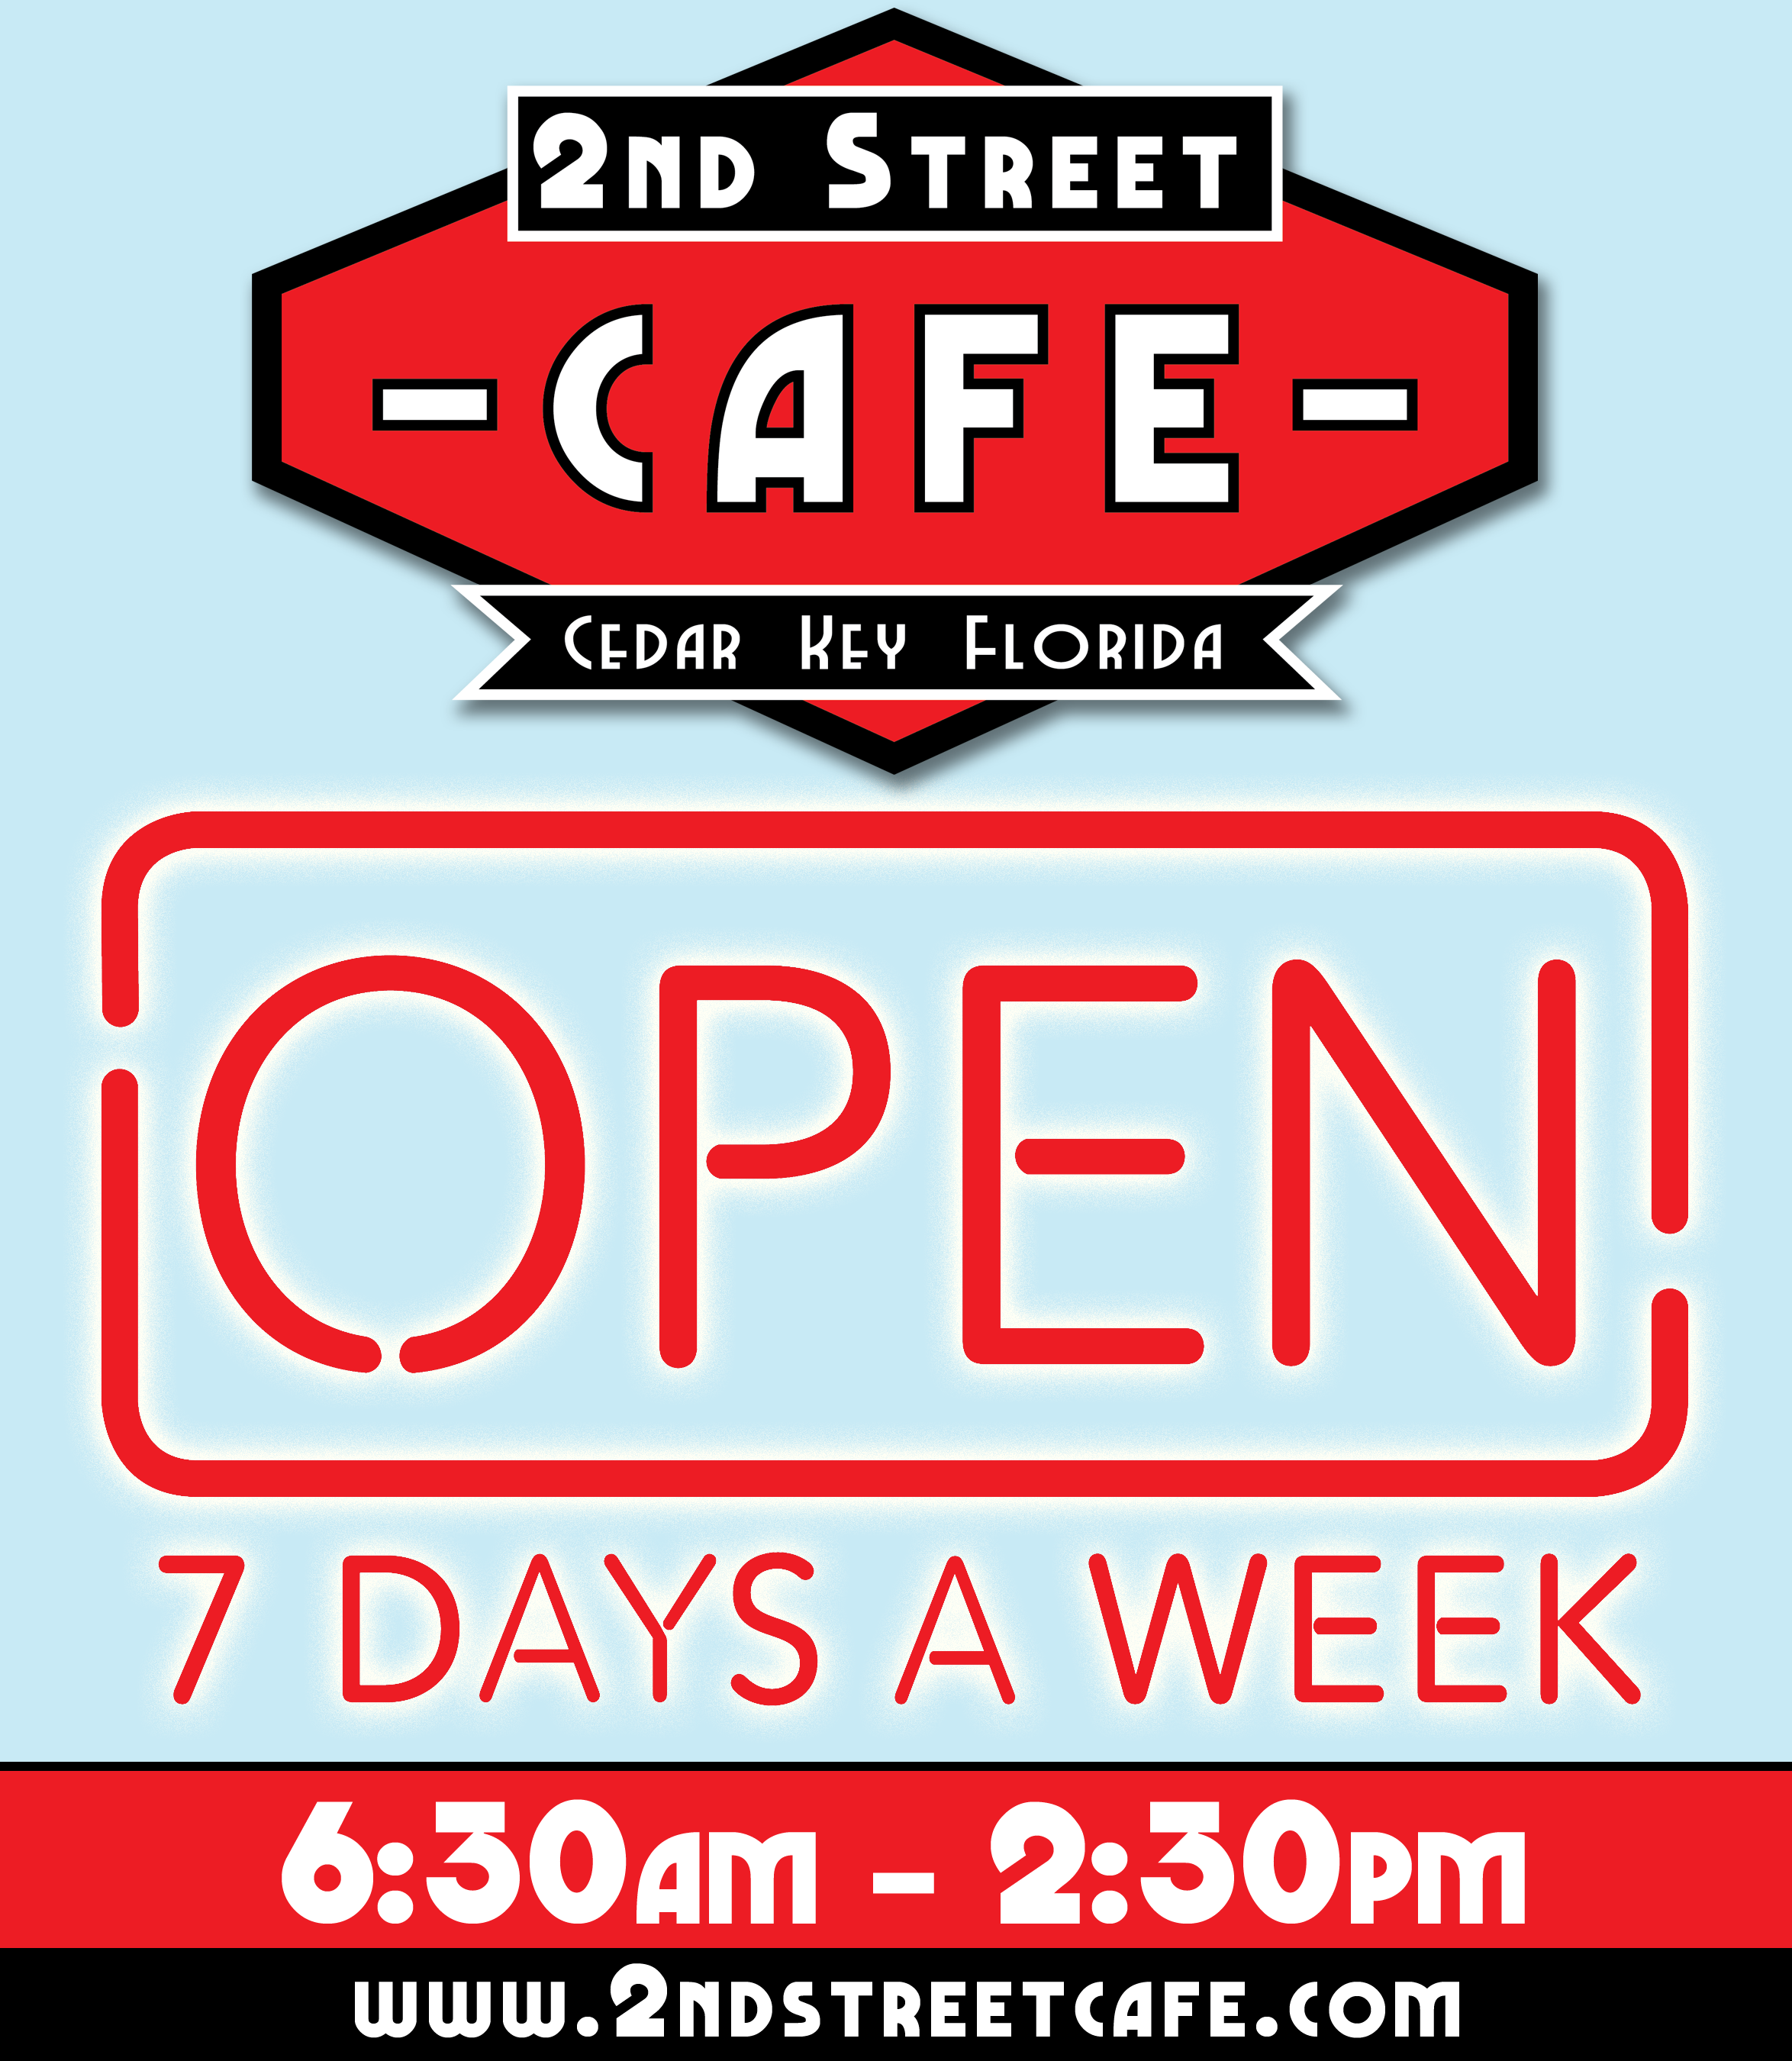 2nd Street Cafe - open 7 Days